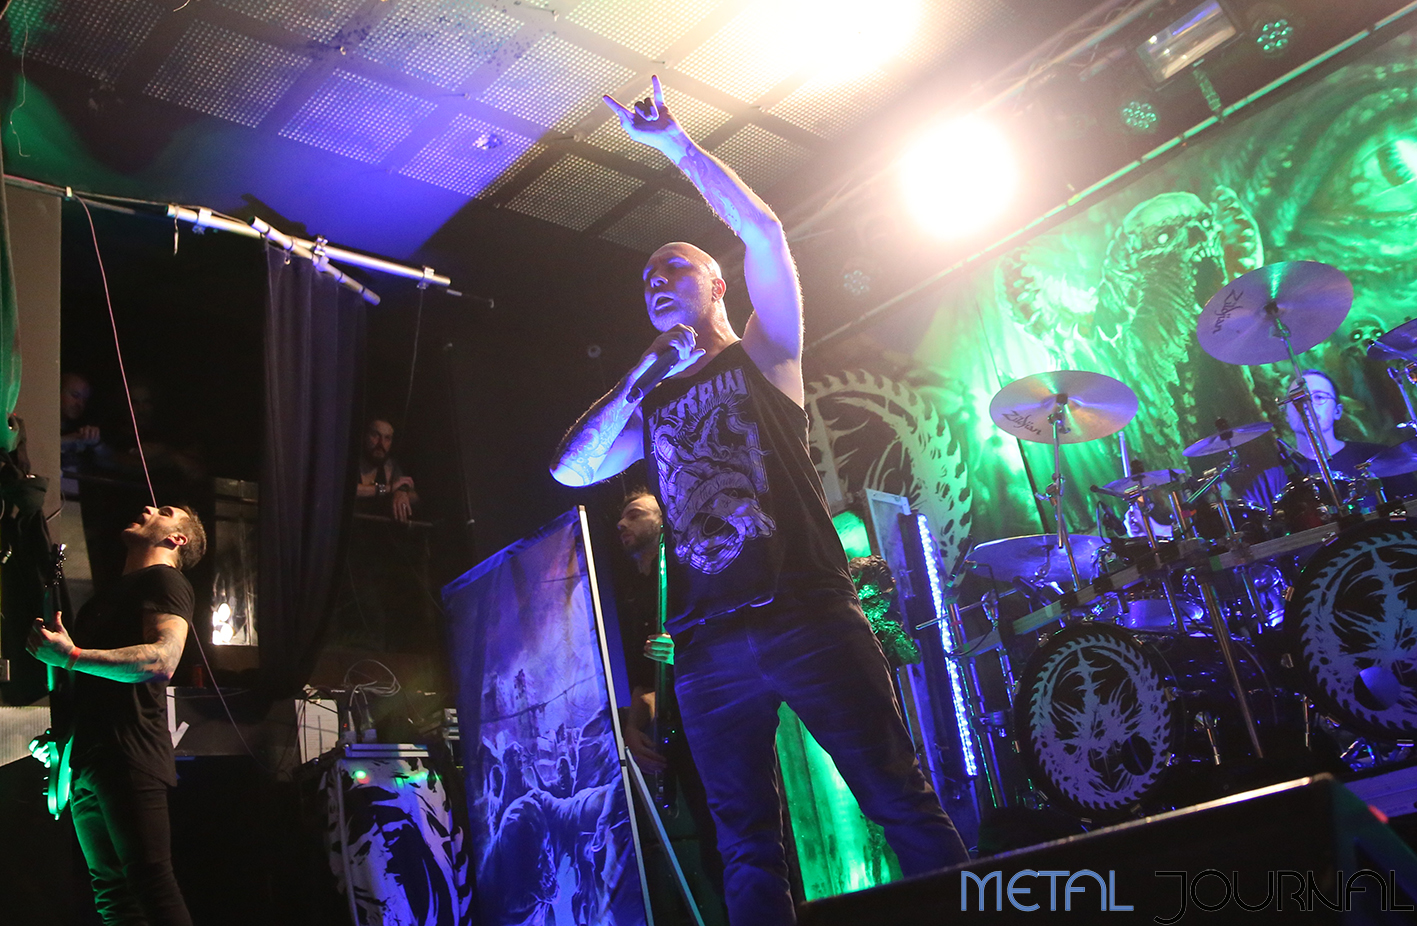 aborted - metal journal 2019 pic 4